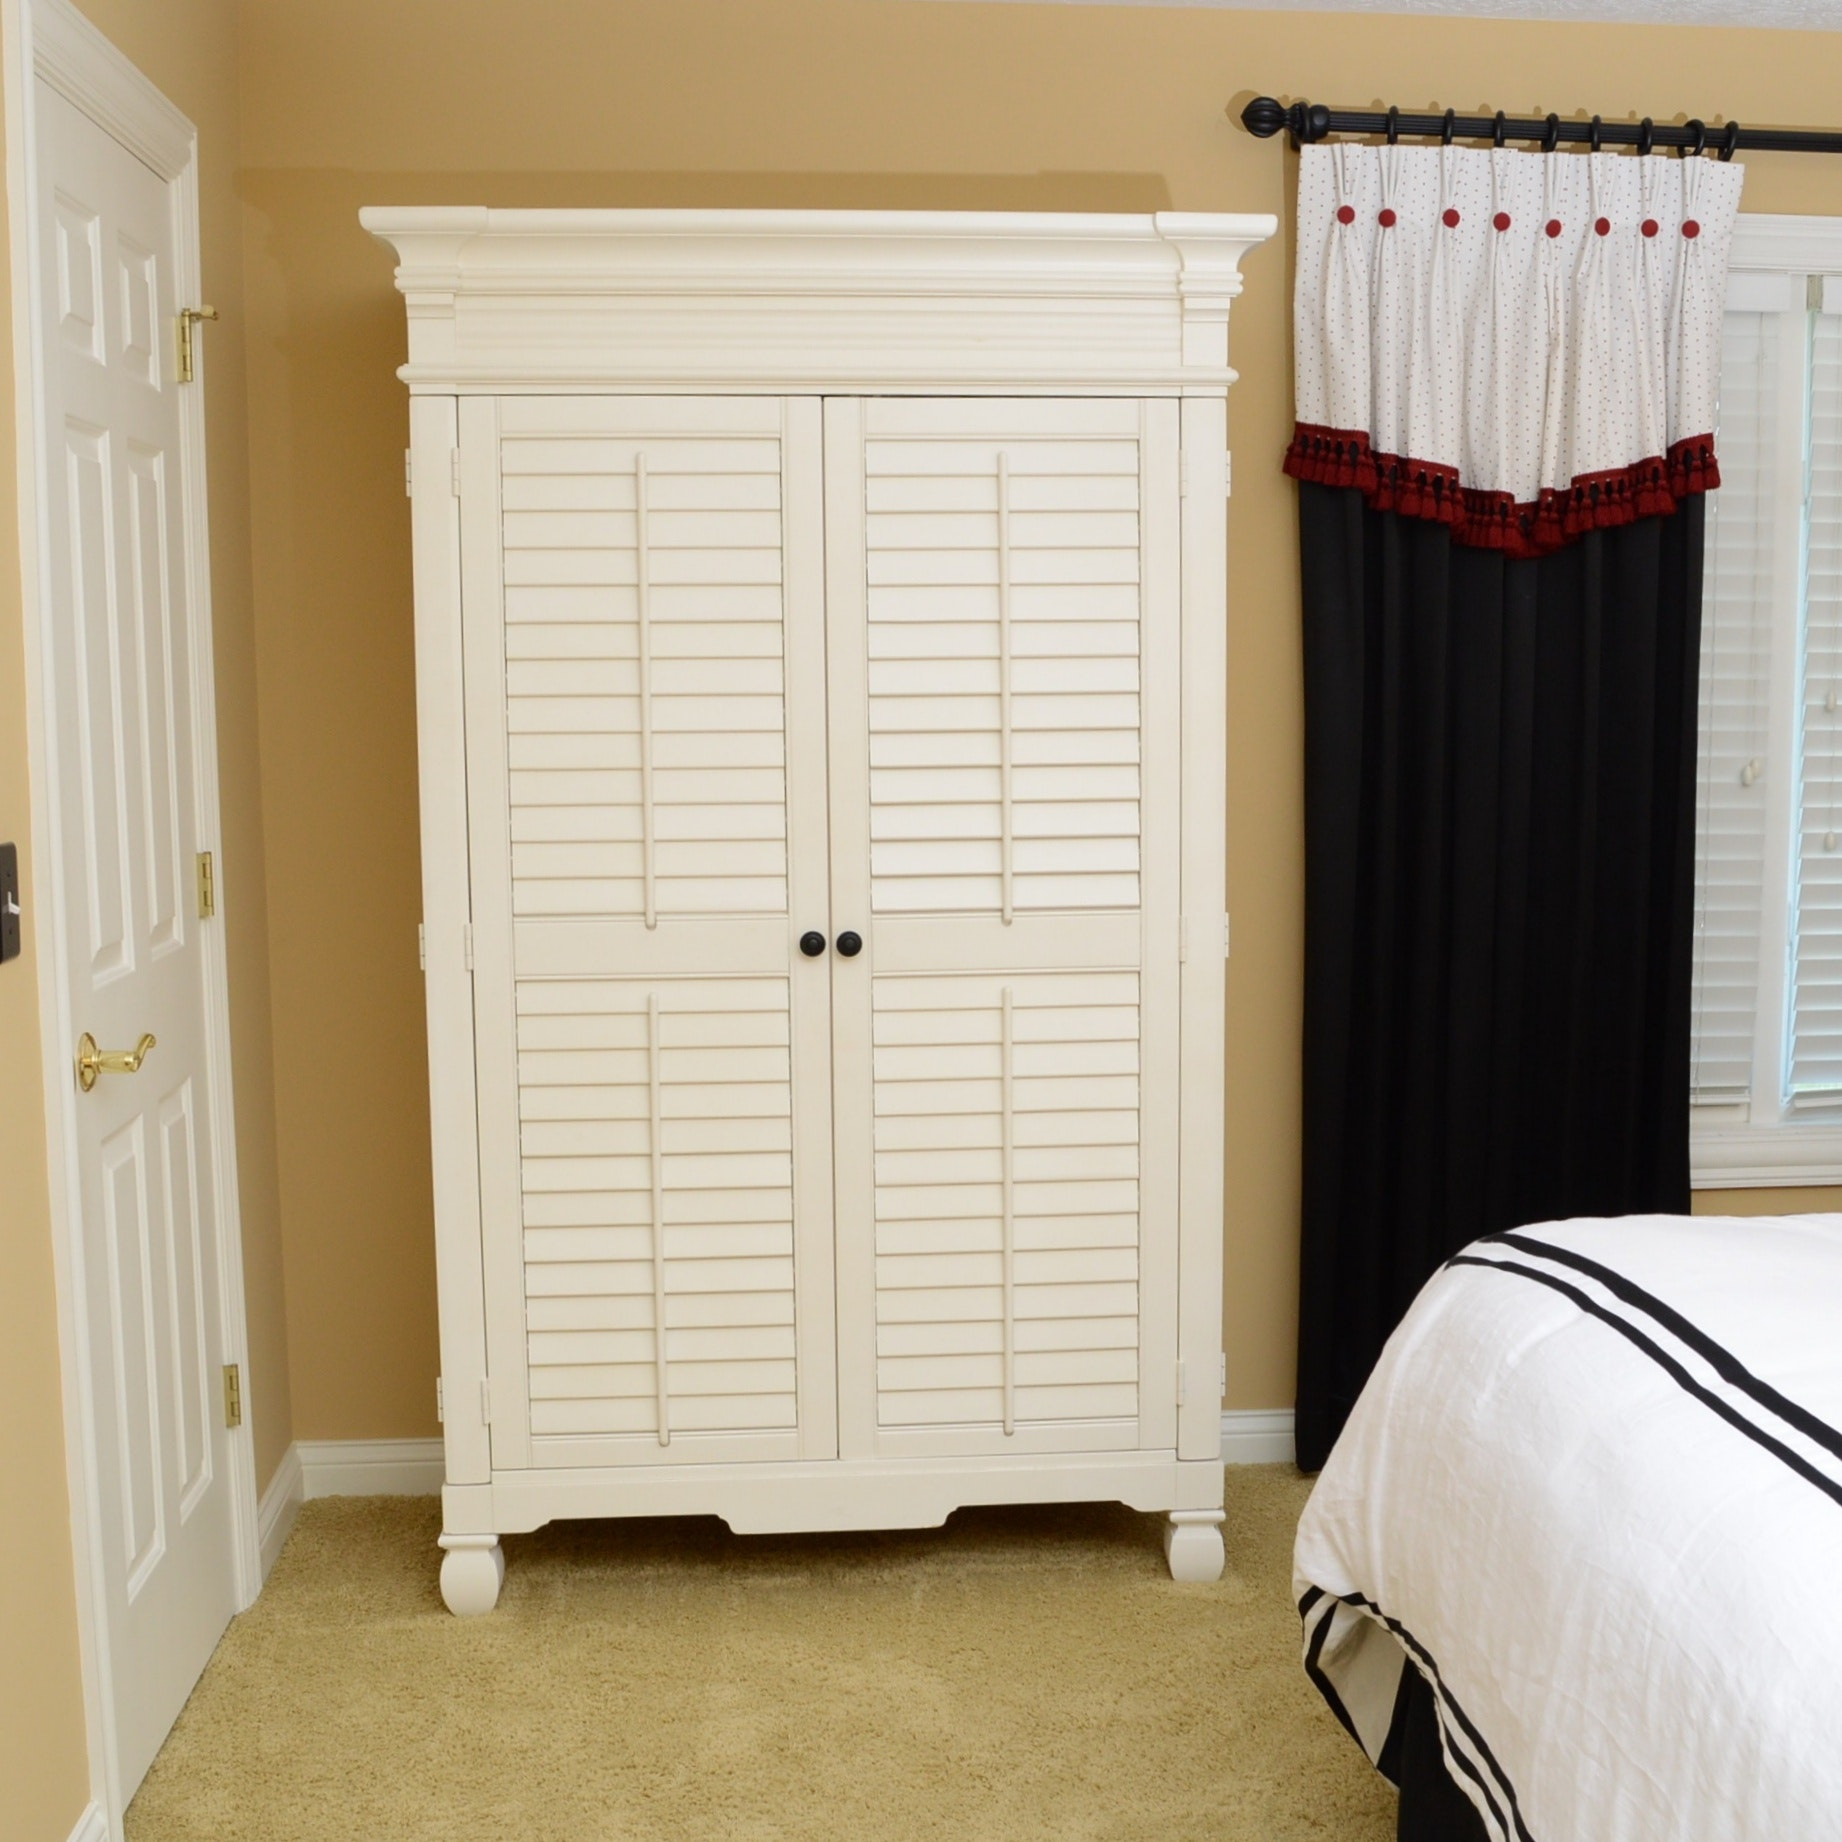 American Signature Armoire with Louvered Doors ... & American Signature Armoire with Louvered Doors : EBTH